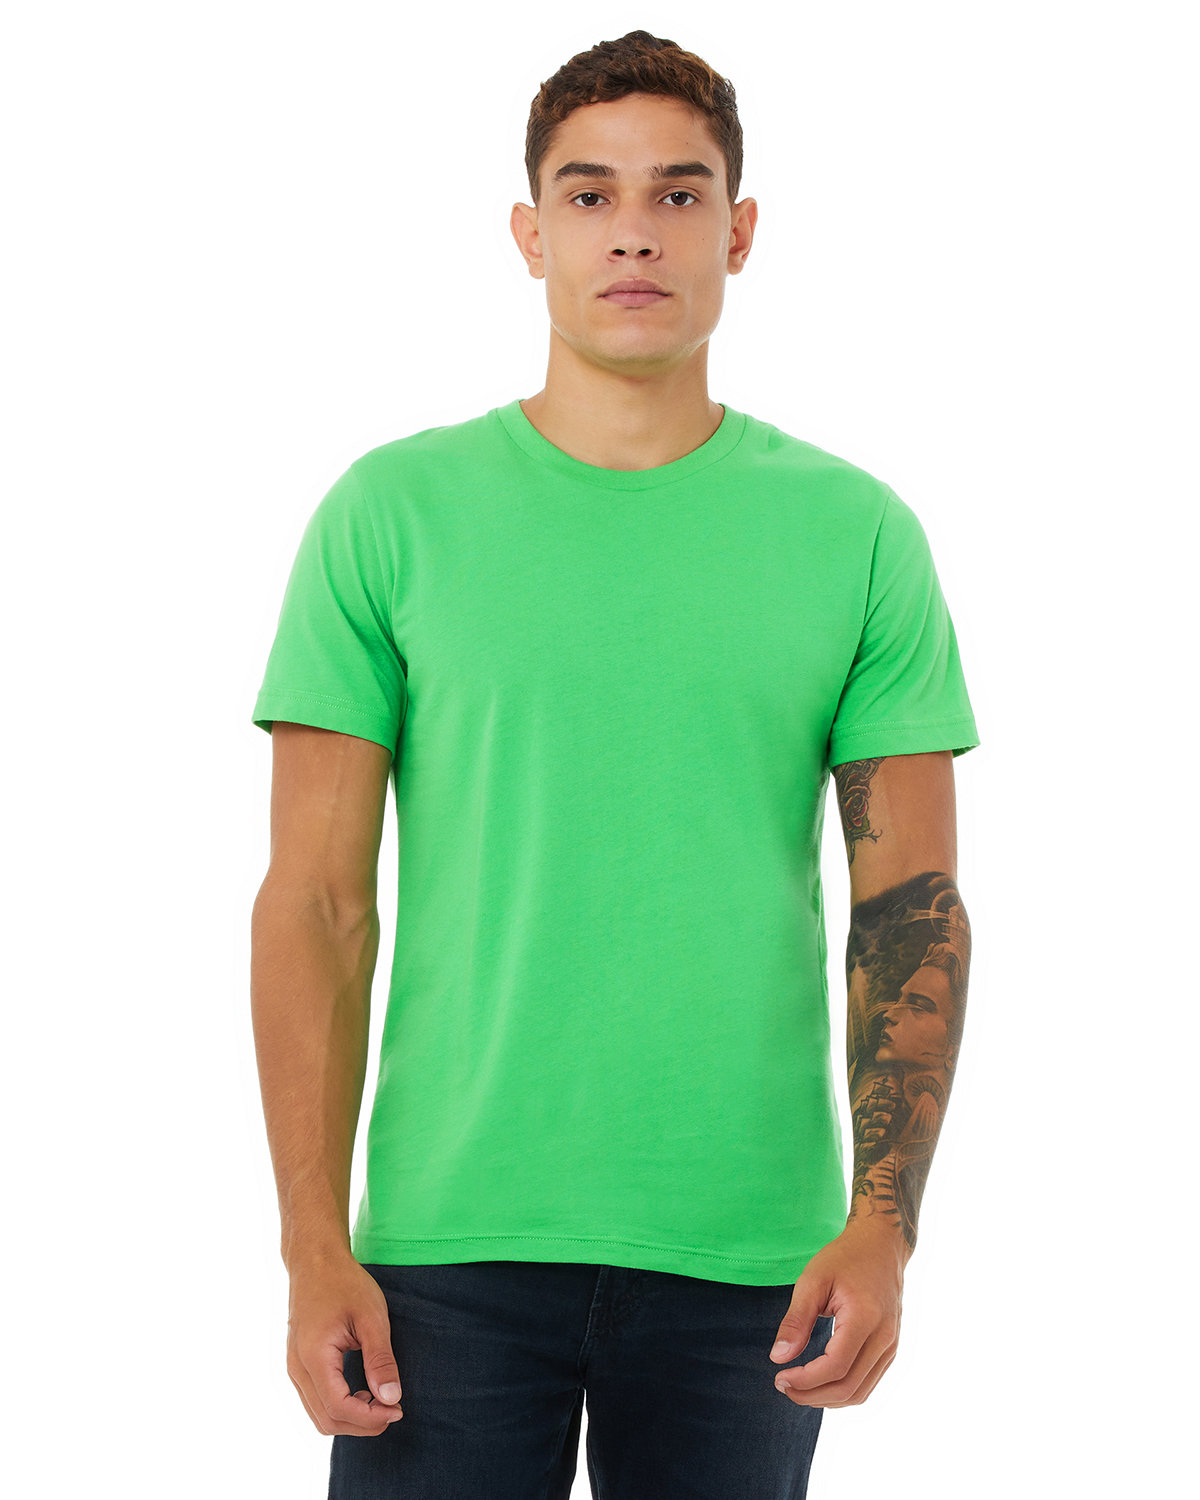 Bella + Canvas Unisex Jersey T-Shirt SYNTHETIC GREEN